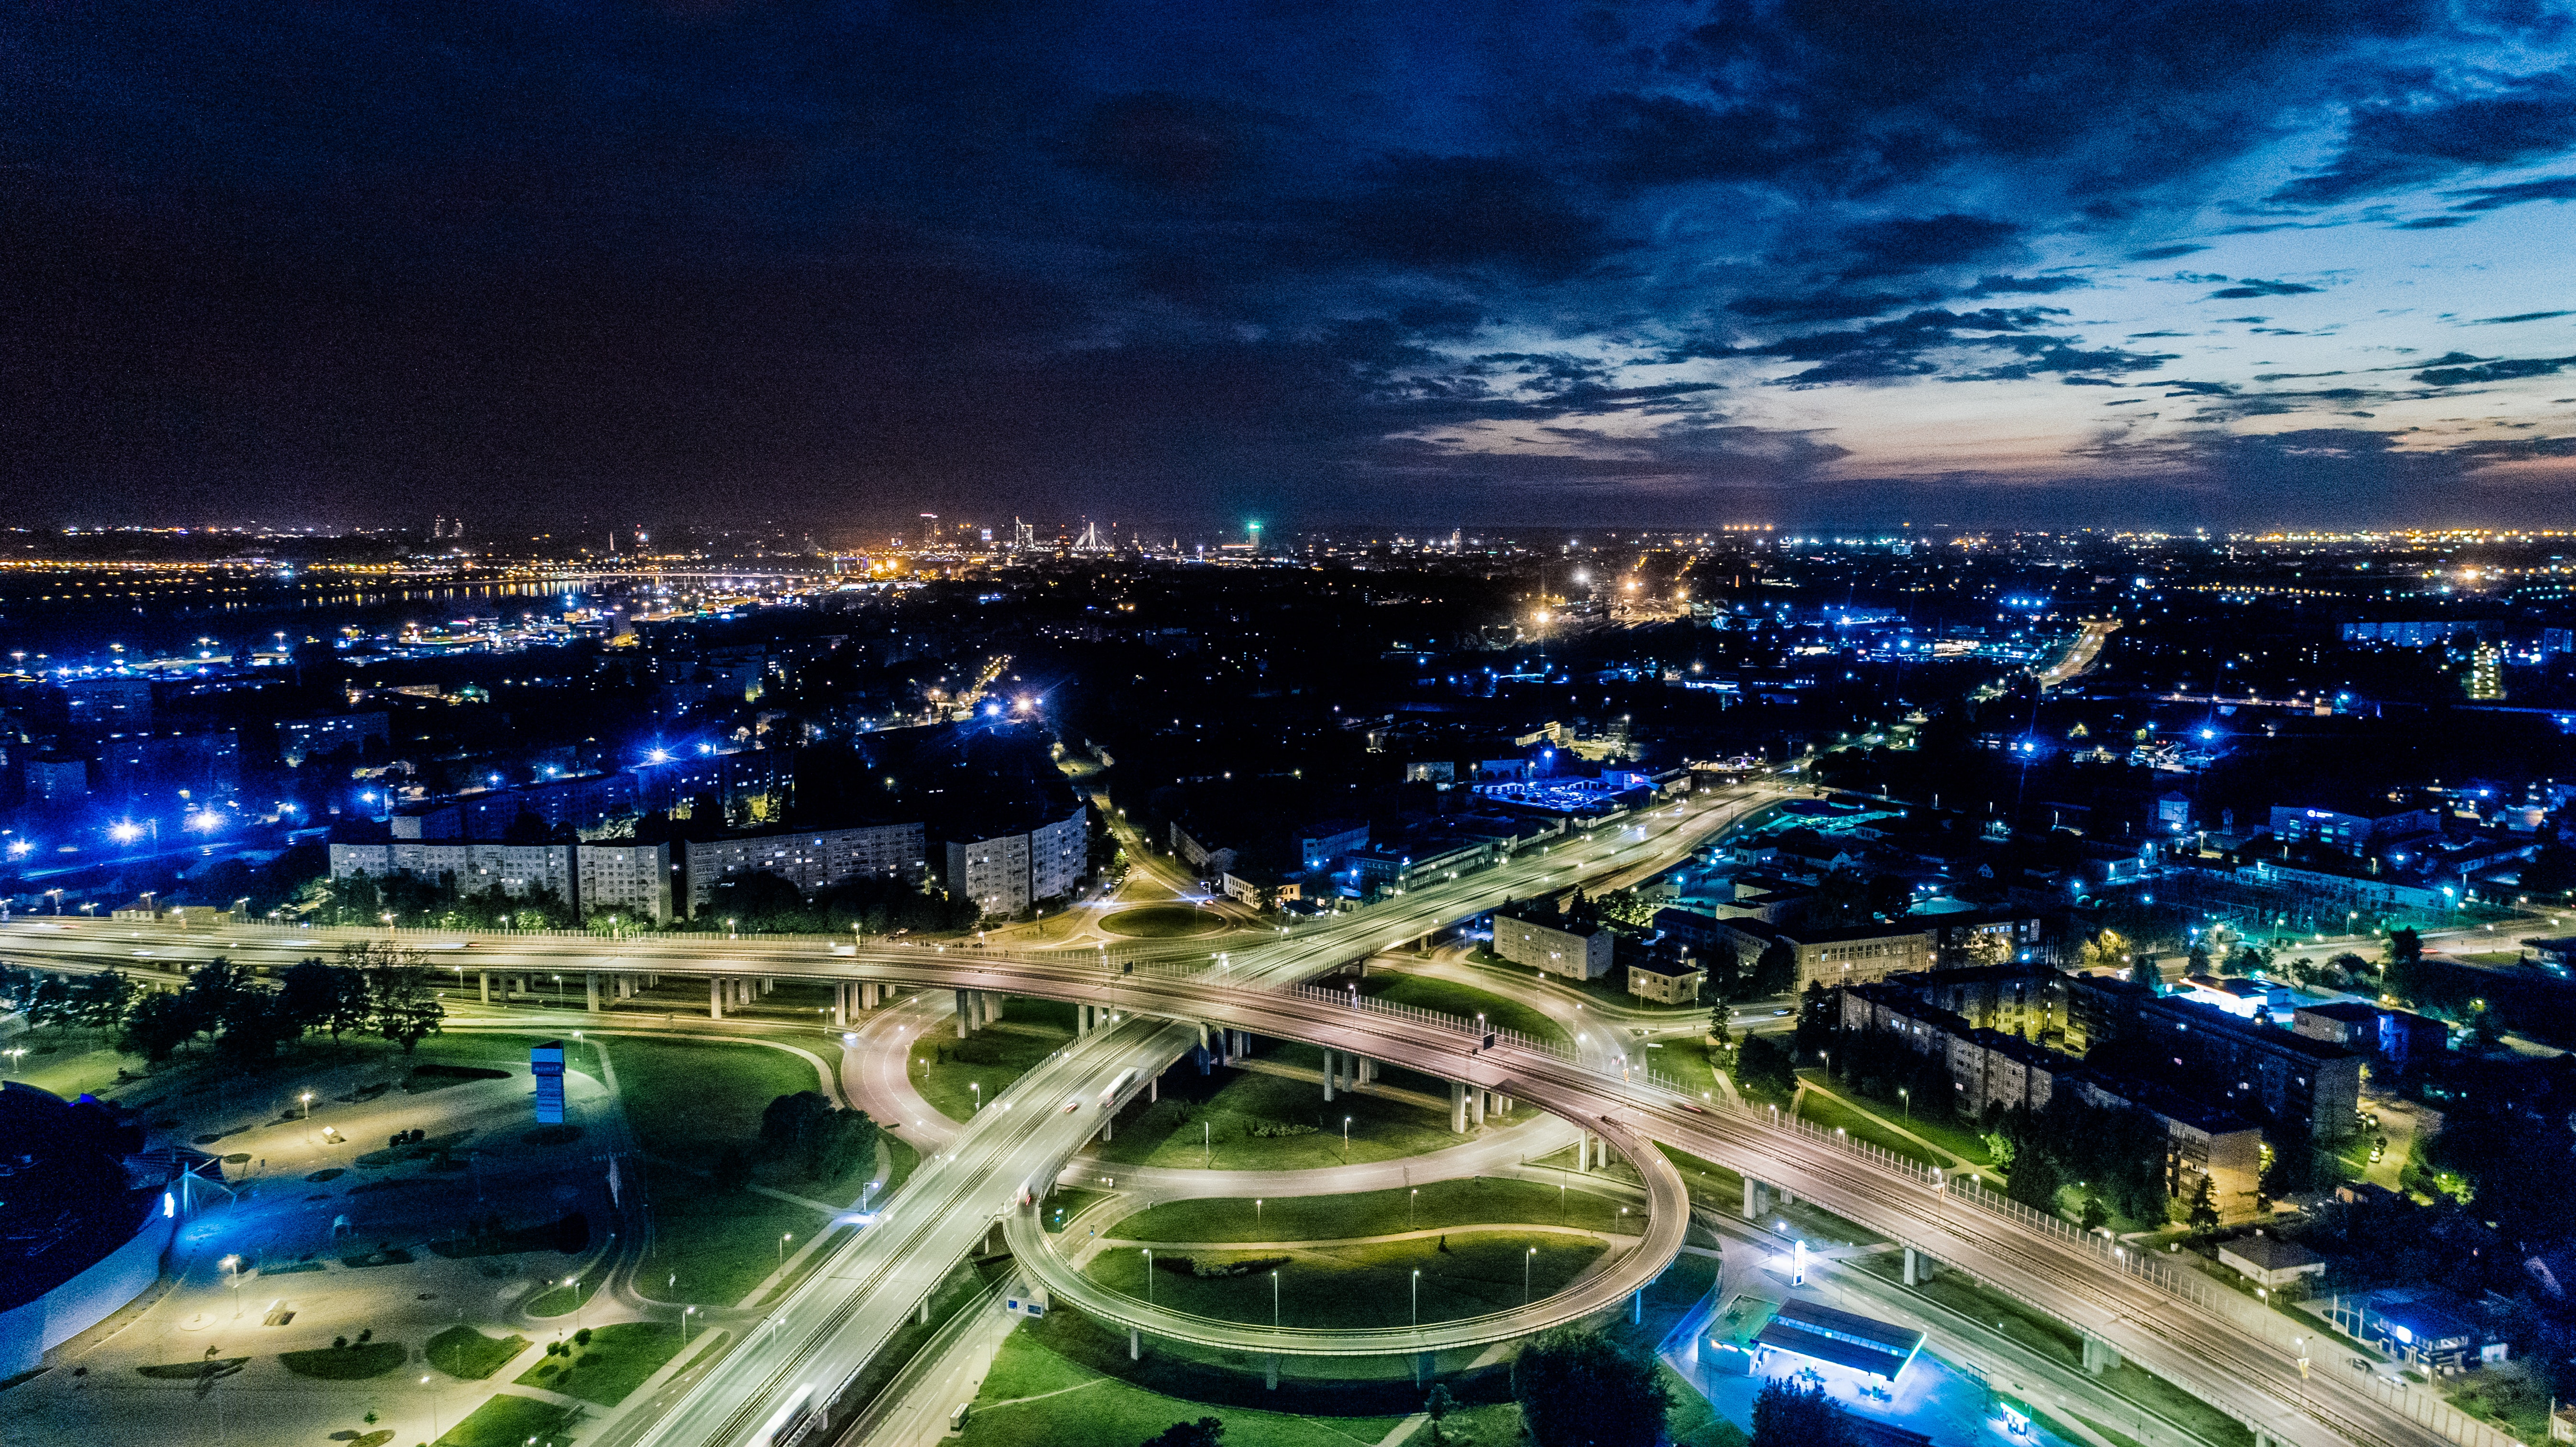 Photography of City during Nighttime, Aerial view, Modern, Travel, Transportation system, HQ Photo